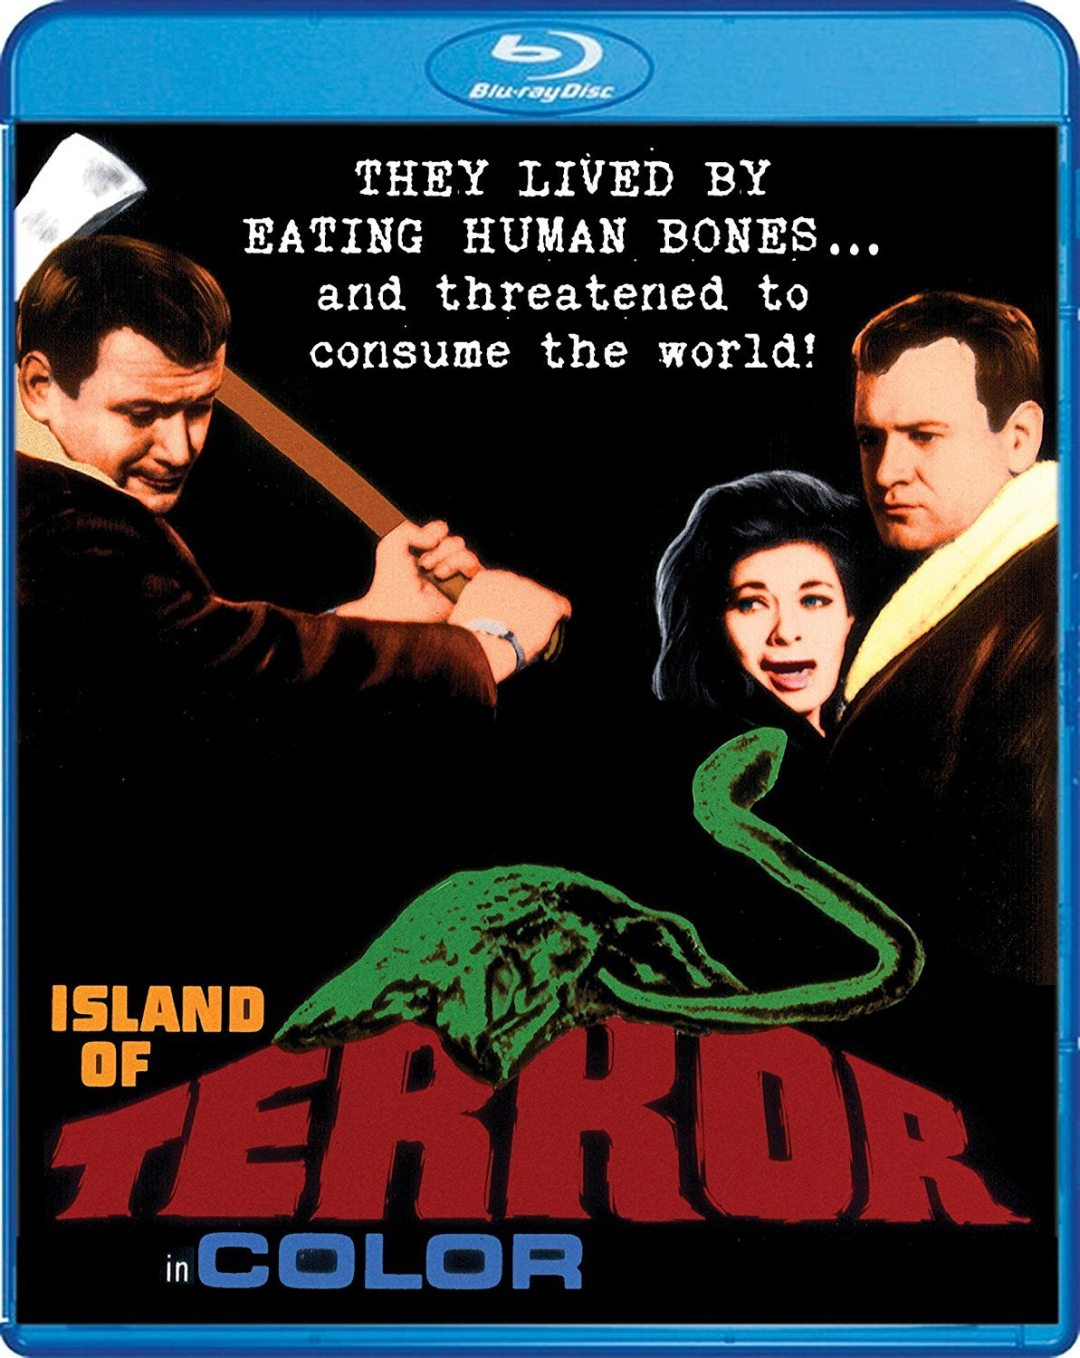 Island of Terror – Blu-ray/DVD Review